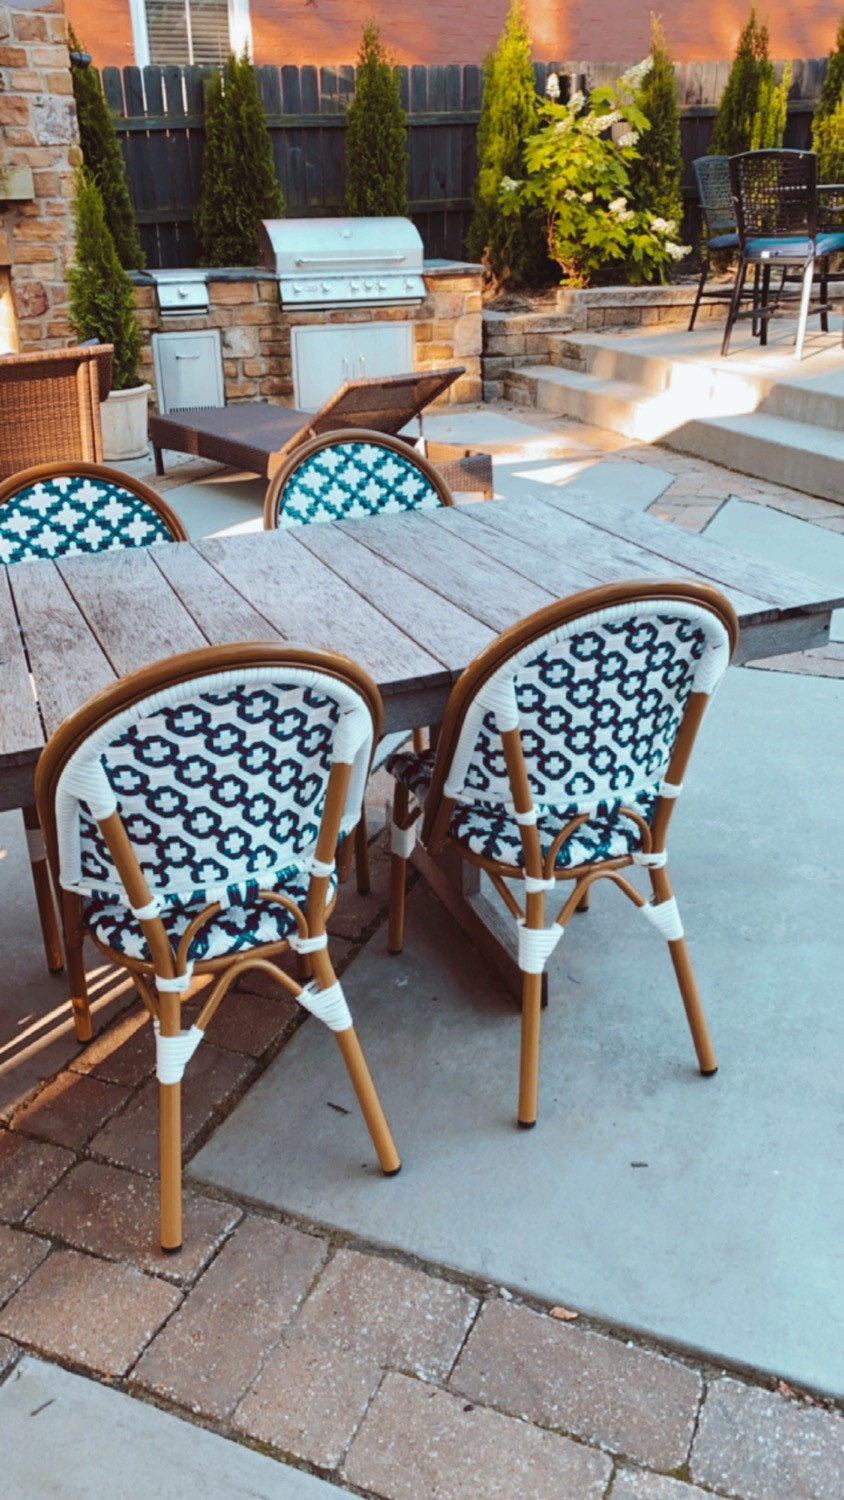 Amazon Blue & White Resort Style Outdoor Furniture M.Reed Studio M x Reed Studio Branding and Website Design St. Charles MO Meghan Reed